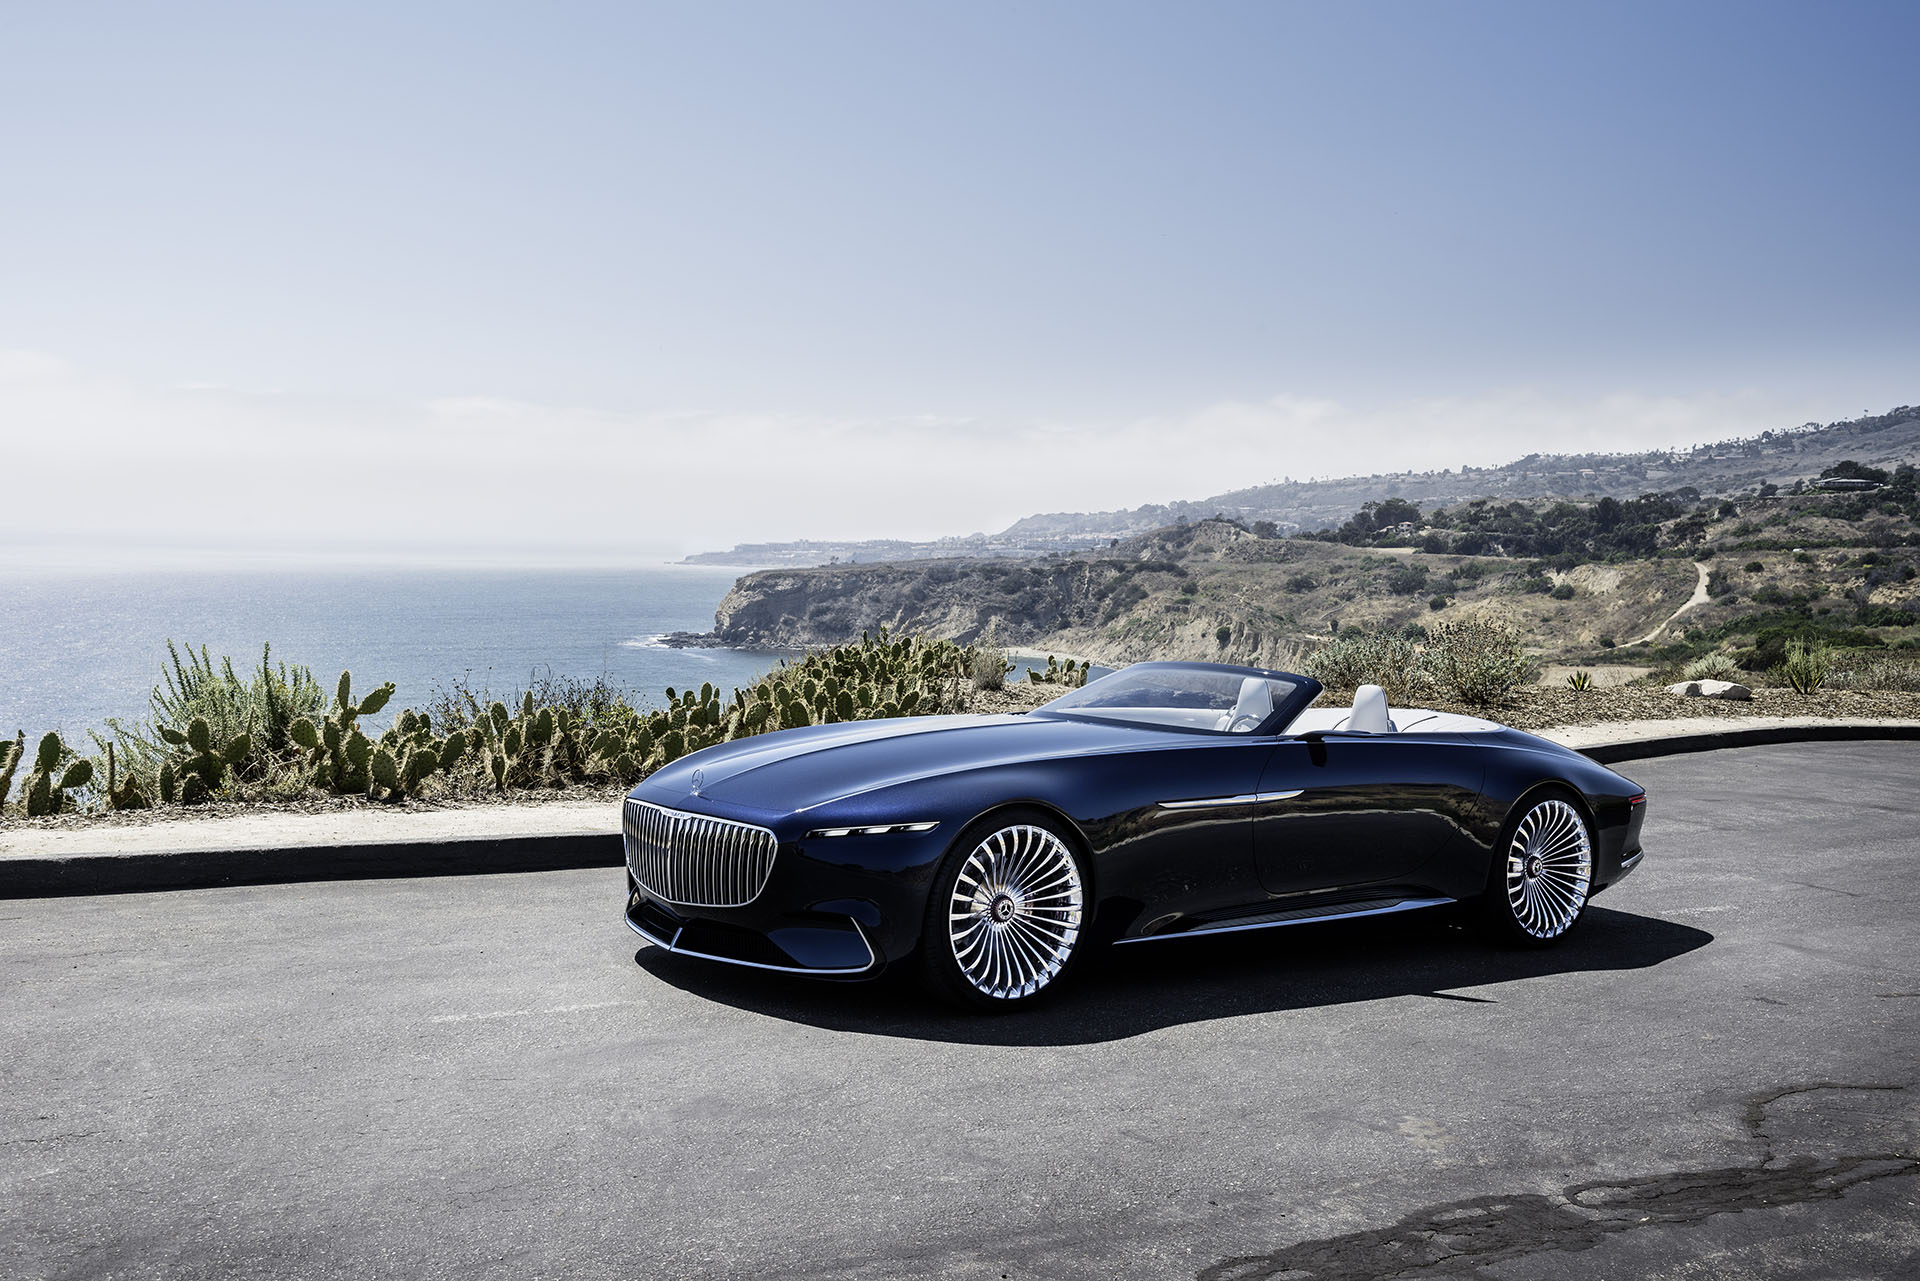 2017 monterey the vision mercedes maybach 6 cabriolet for Mercedes benz of monterey monterey ca